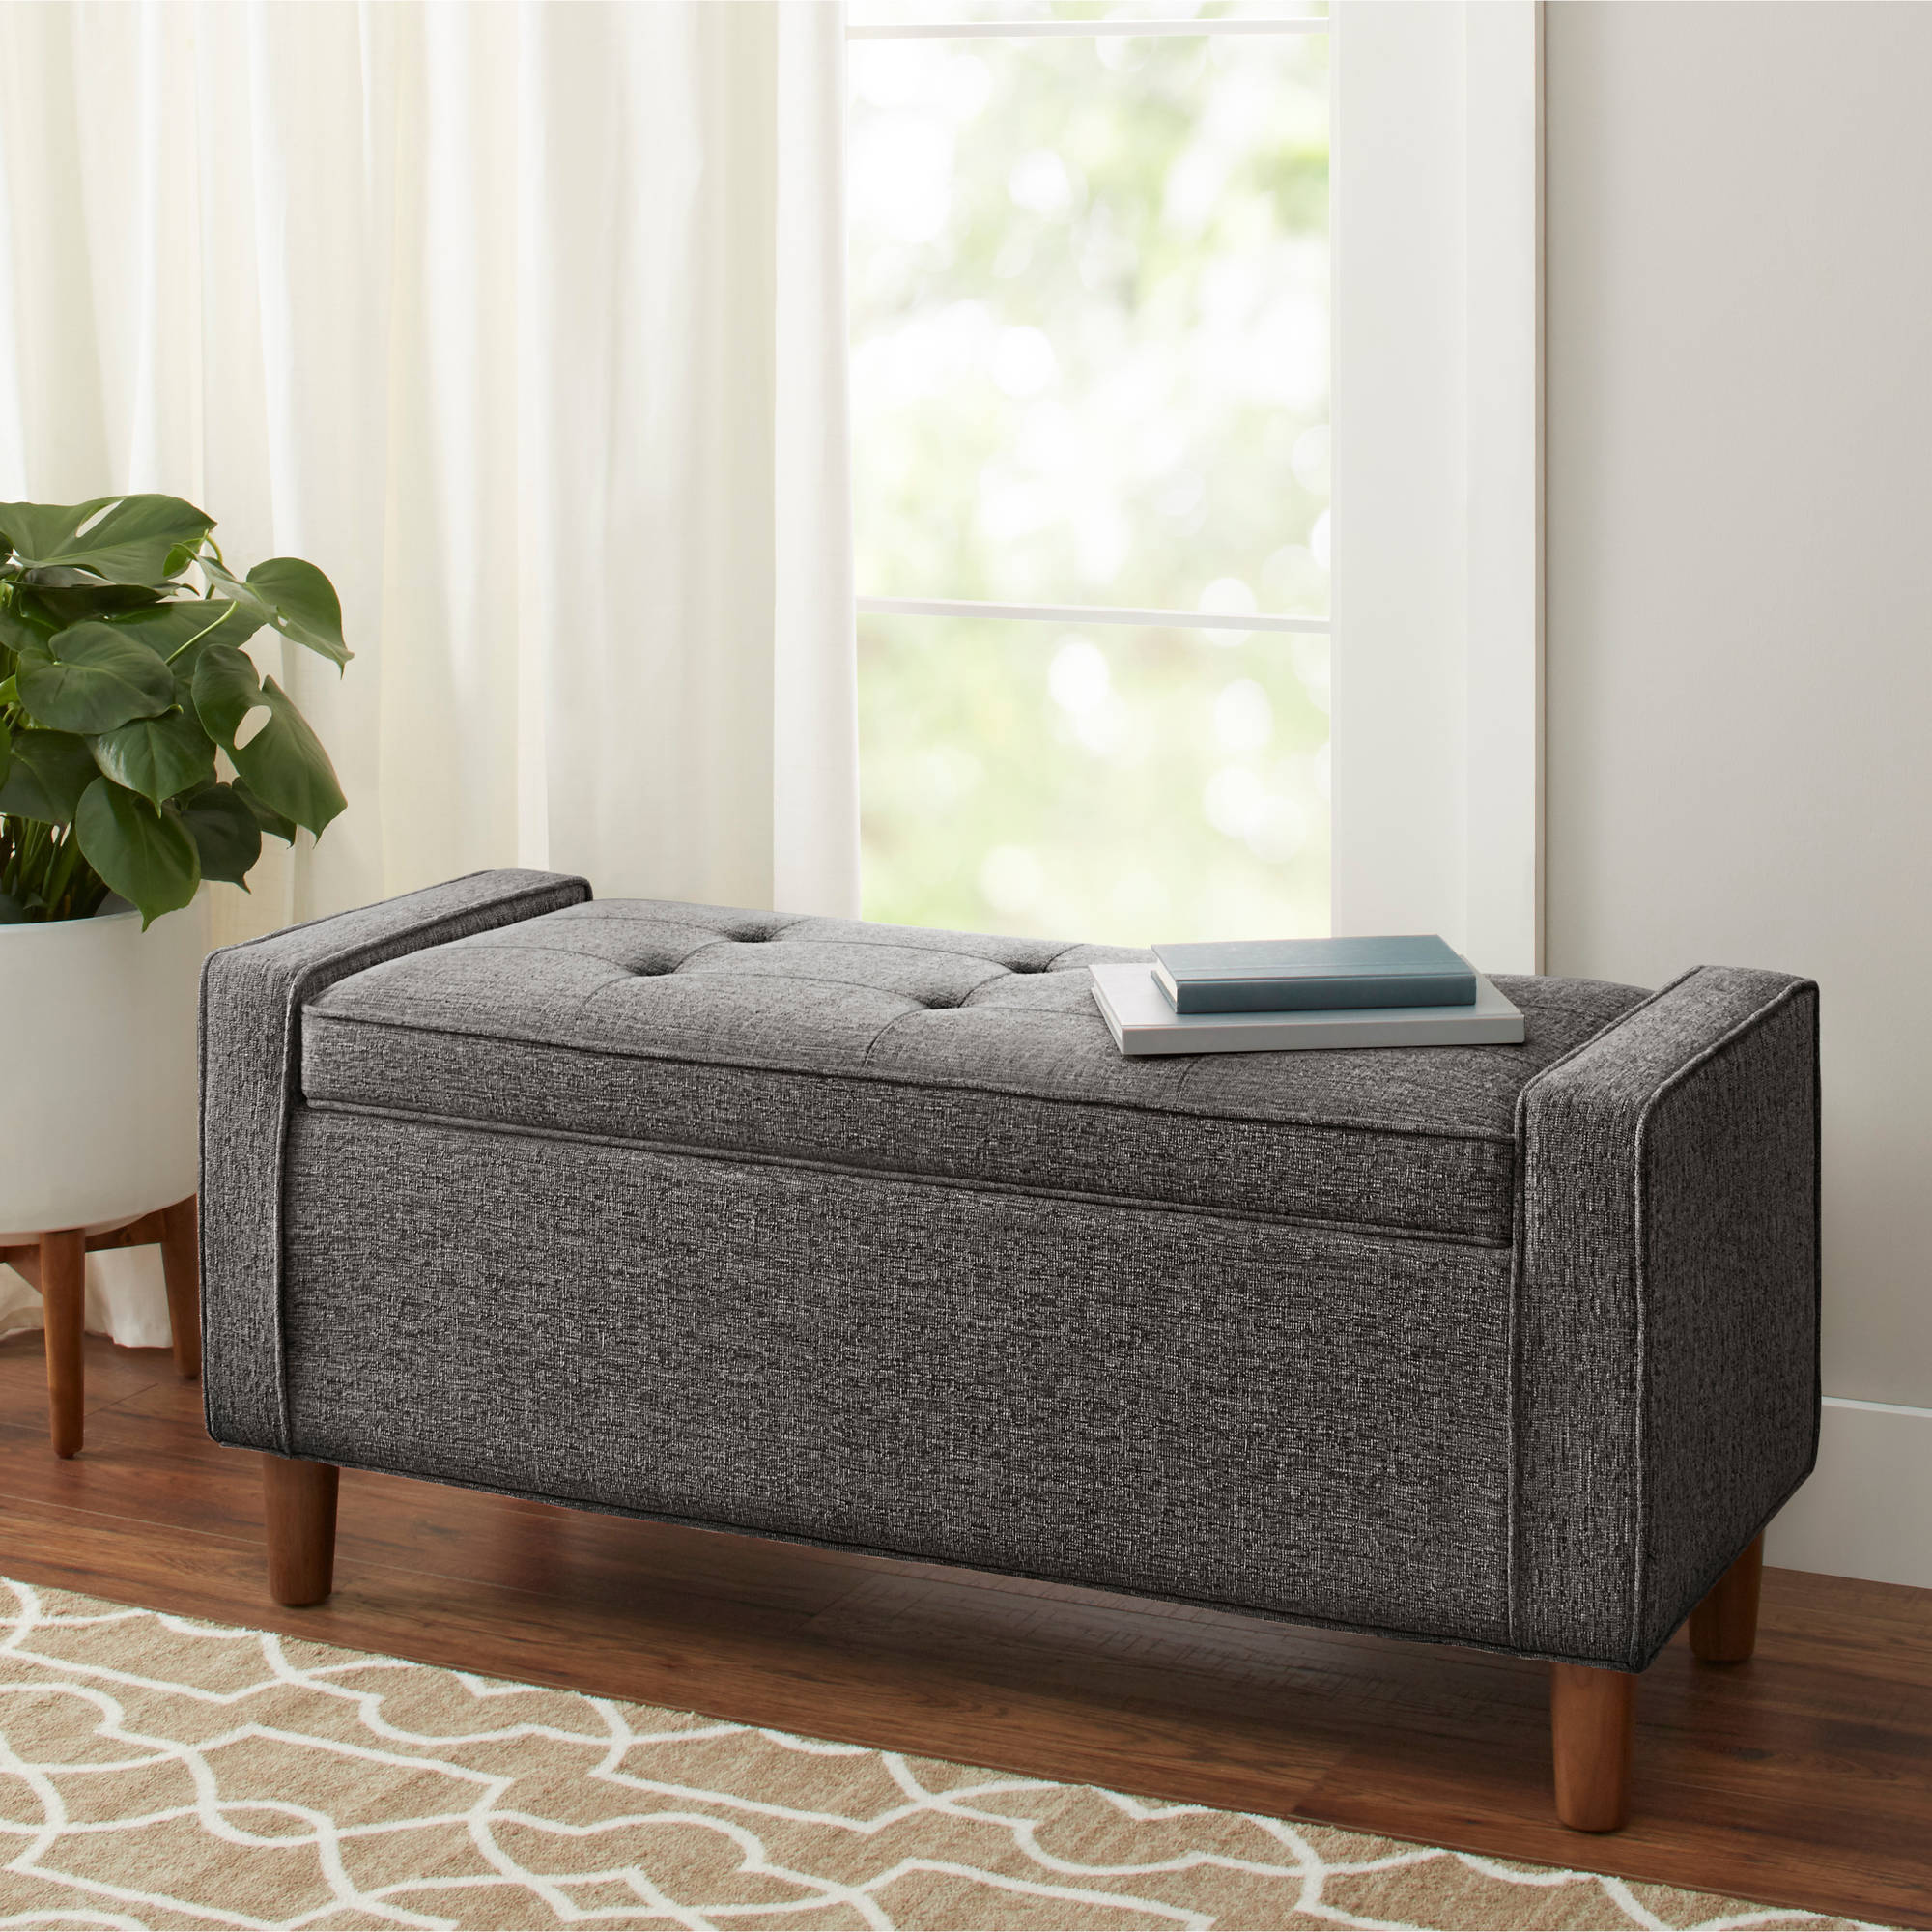 Better Homes and Gardens Flynn Mid Century Modern Upholstered Storage Bench, Multiple Colors